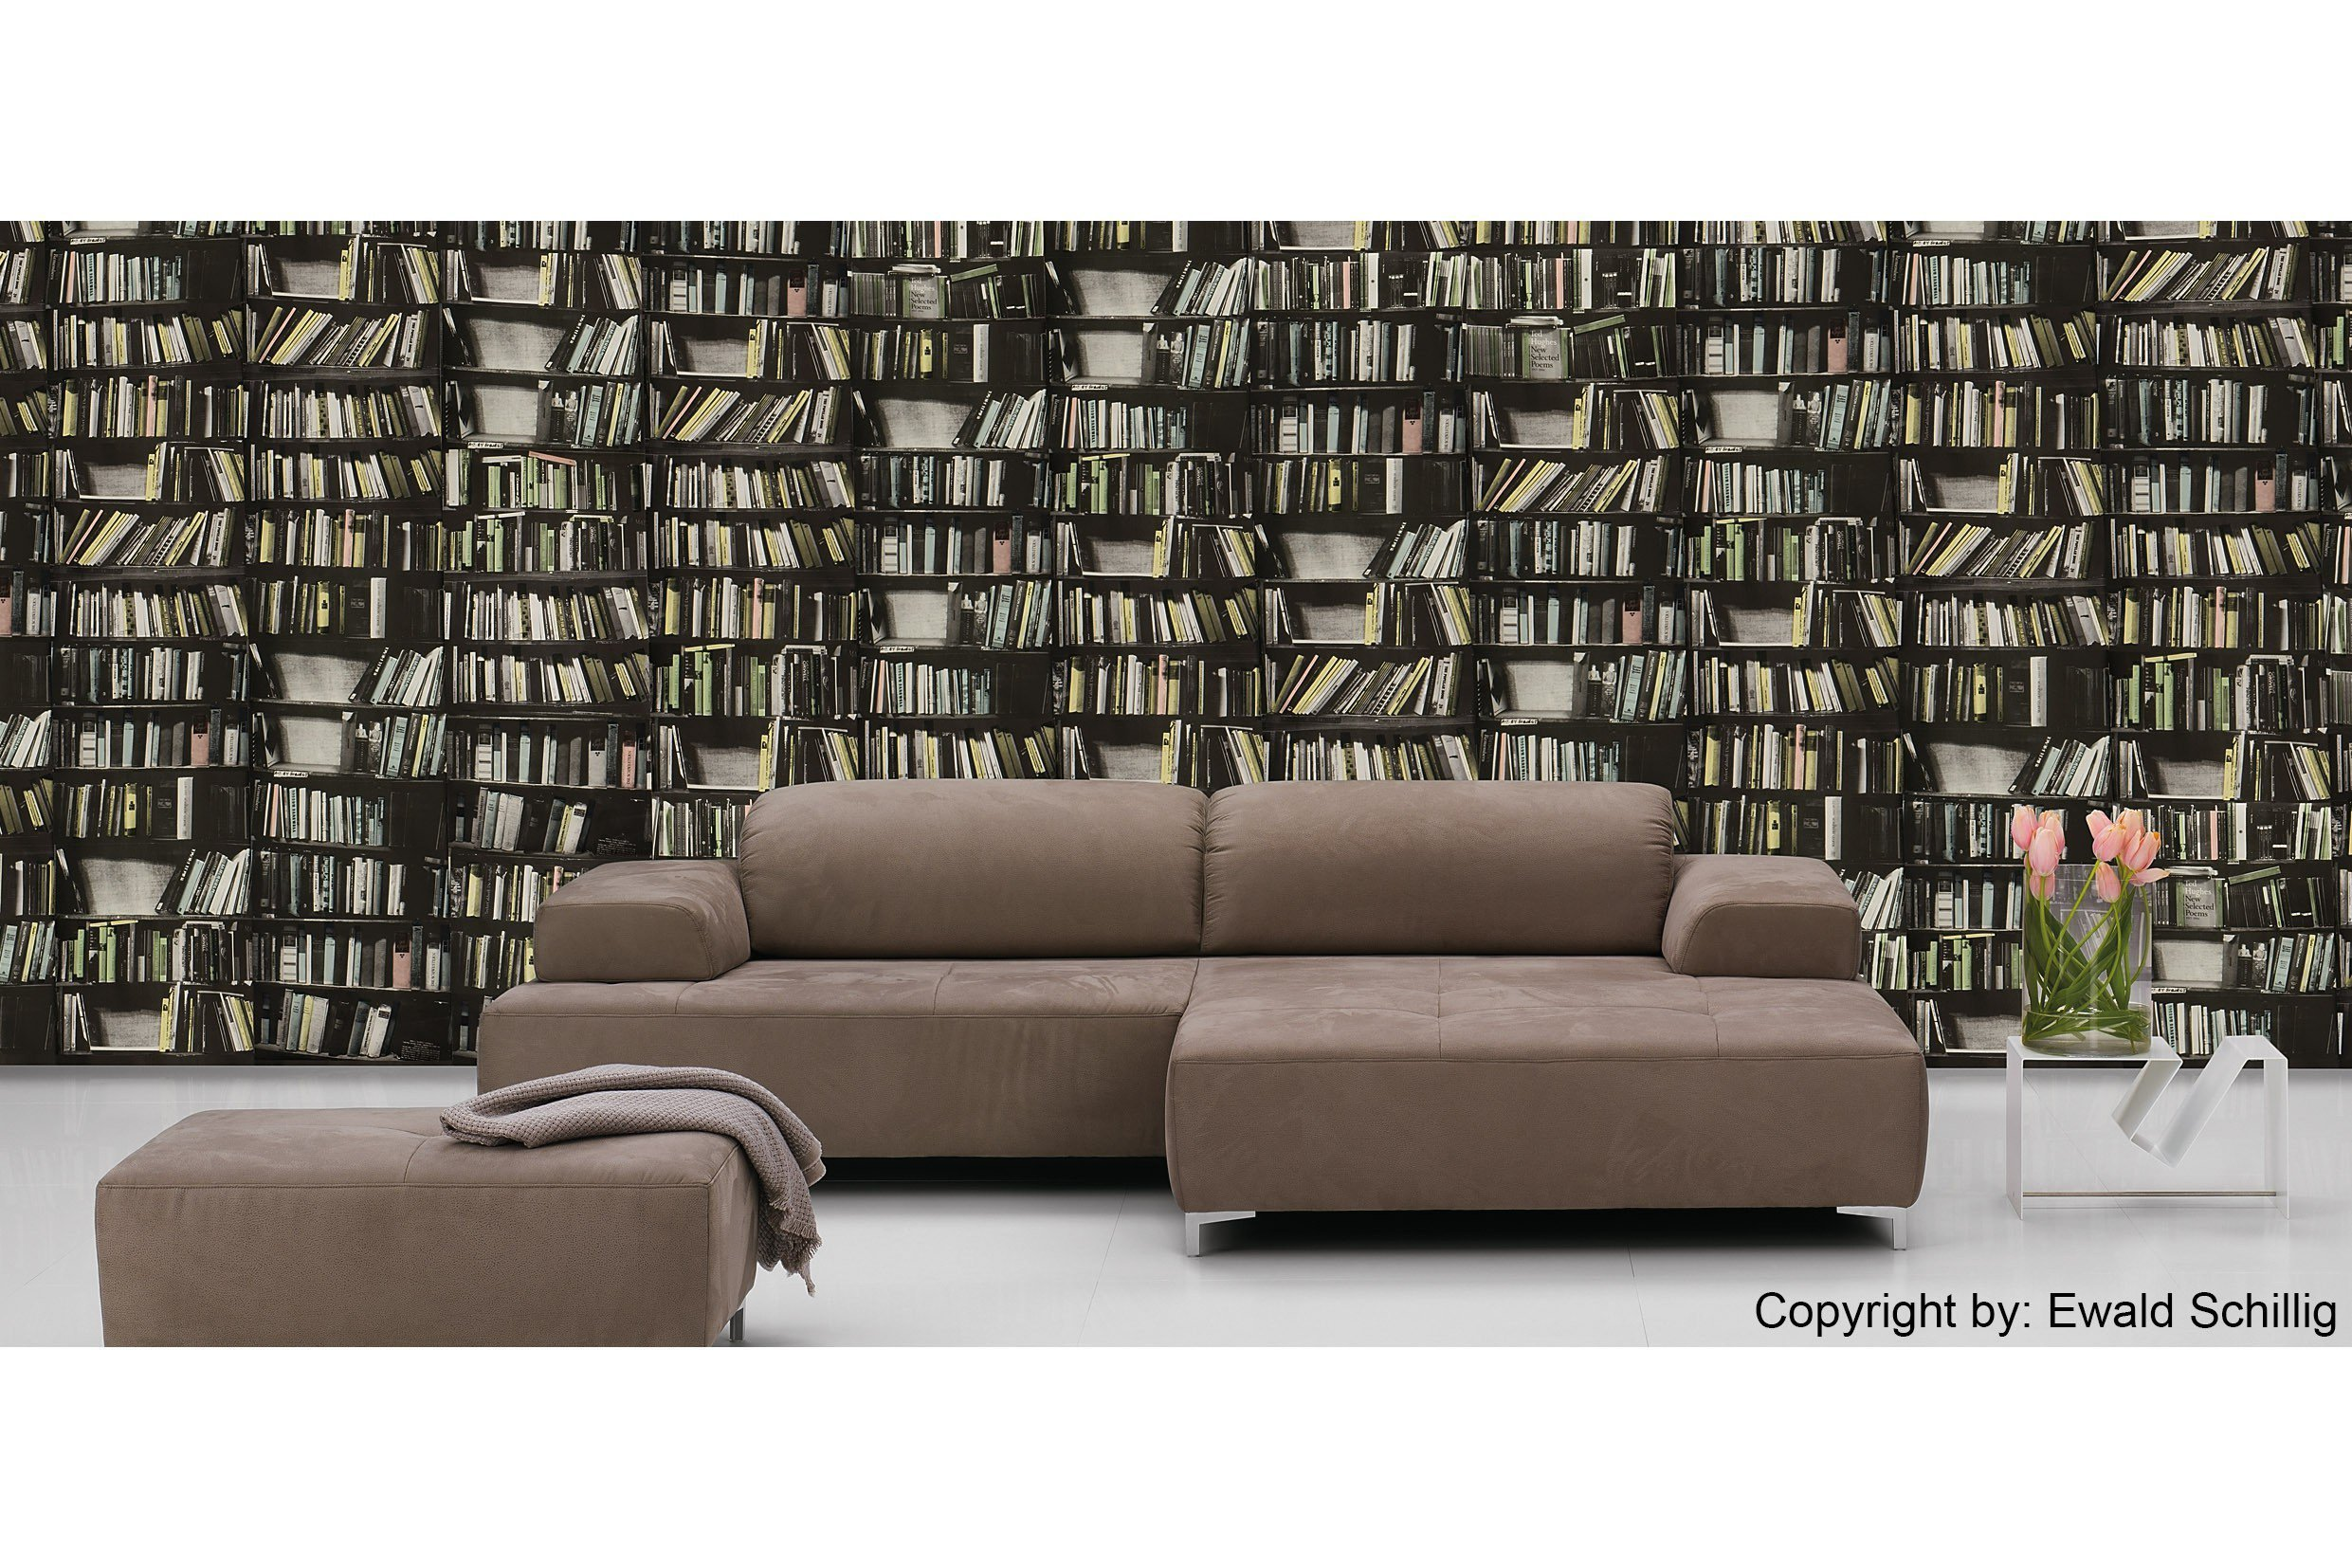 ewald schillig mega ecksofa in braun m bel letz ihr online shop. Black Bedroom Furniture Sets. Home Design Ideas